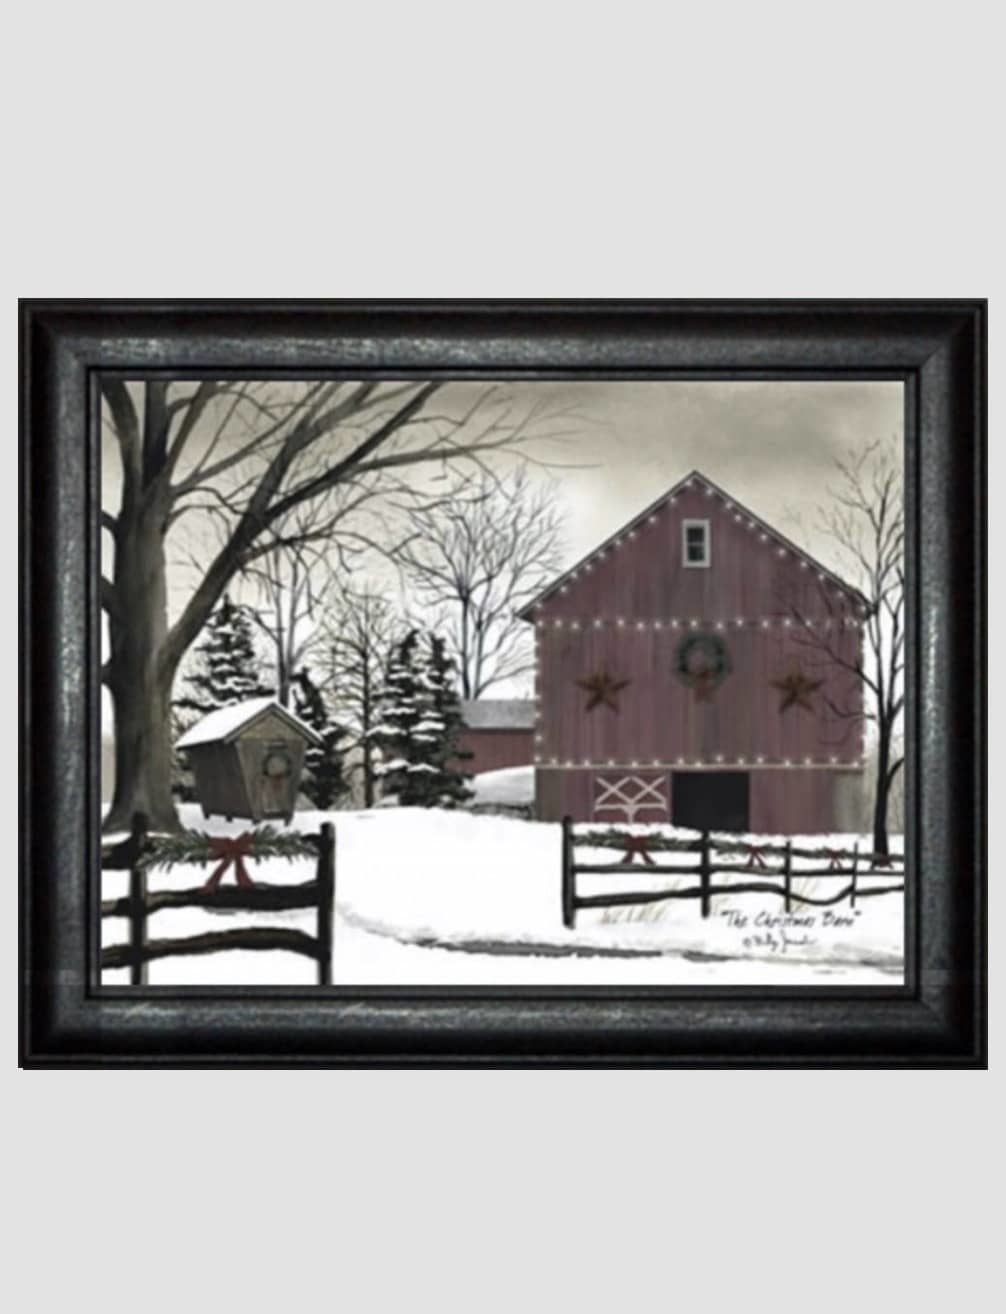 Billy Jacobs Christmas Barn Print by Billy Jacobs